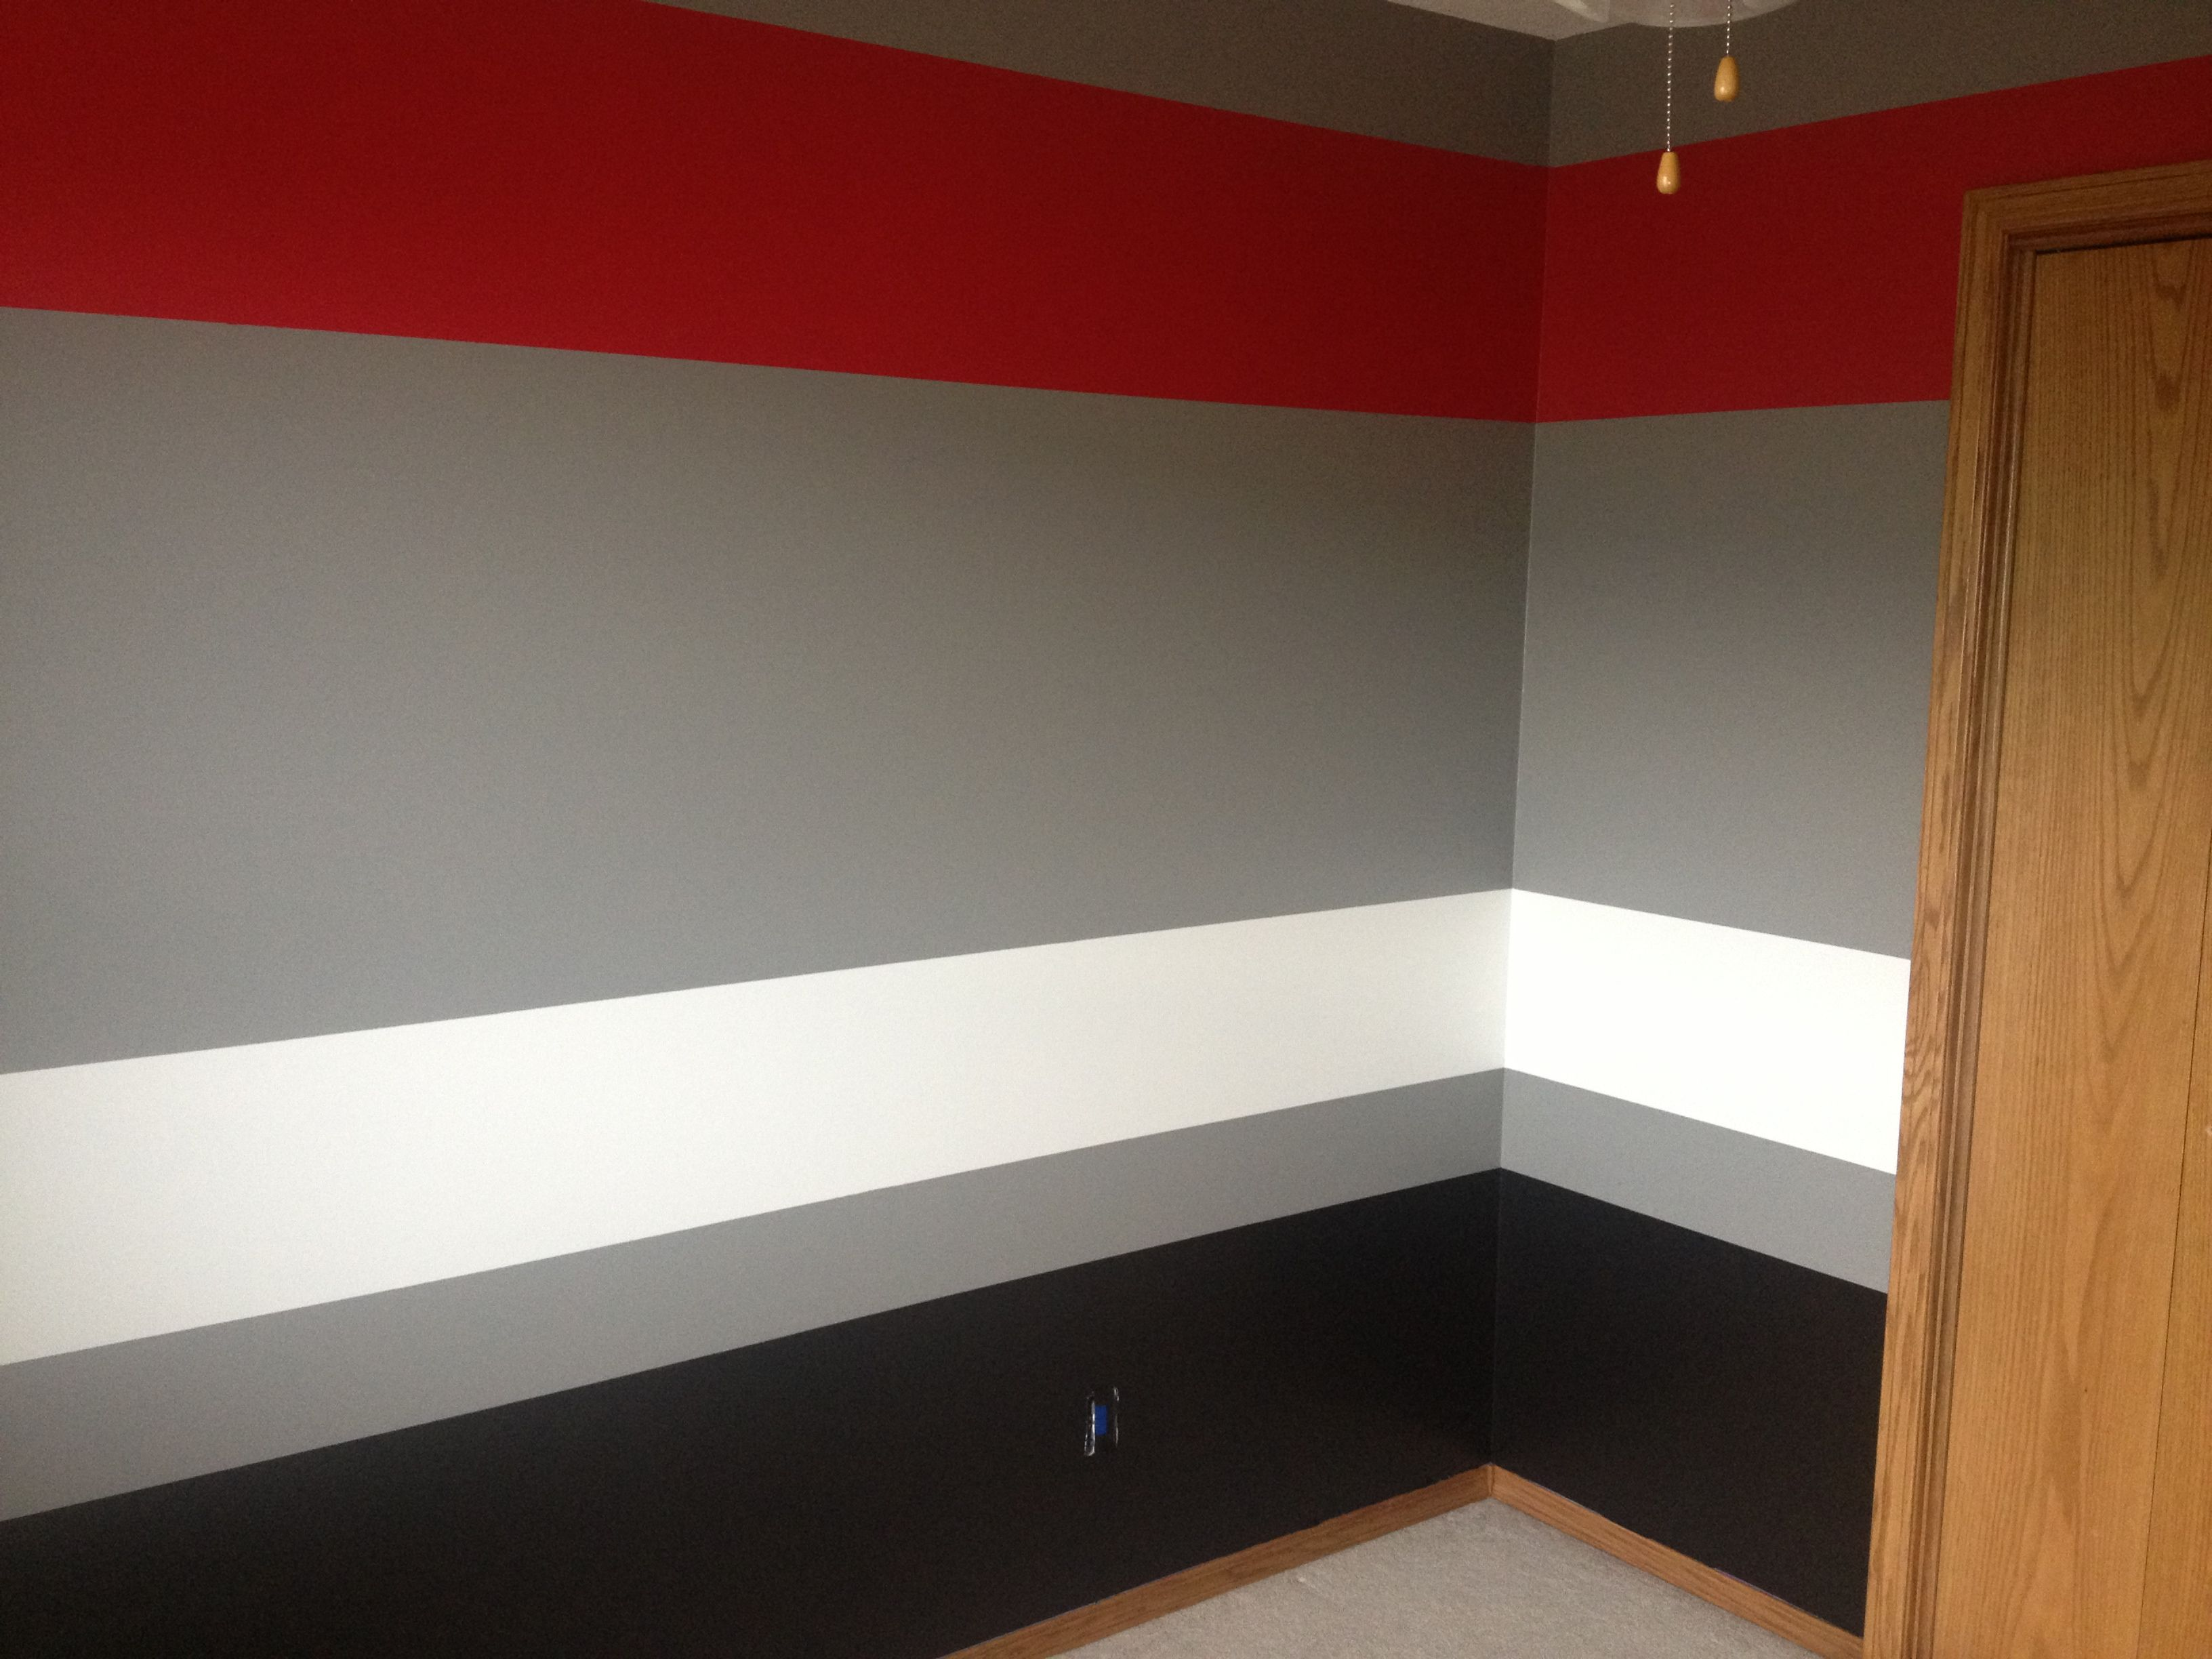 Painted room grey, red, white, black | Rooms | Pinterest | Grey ...